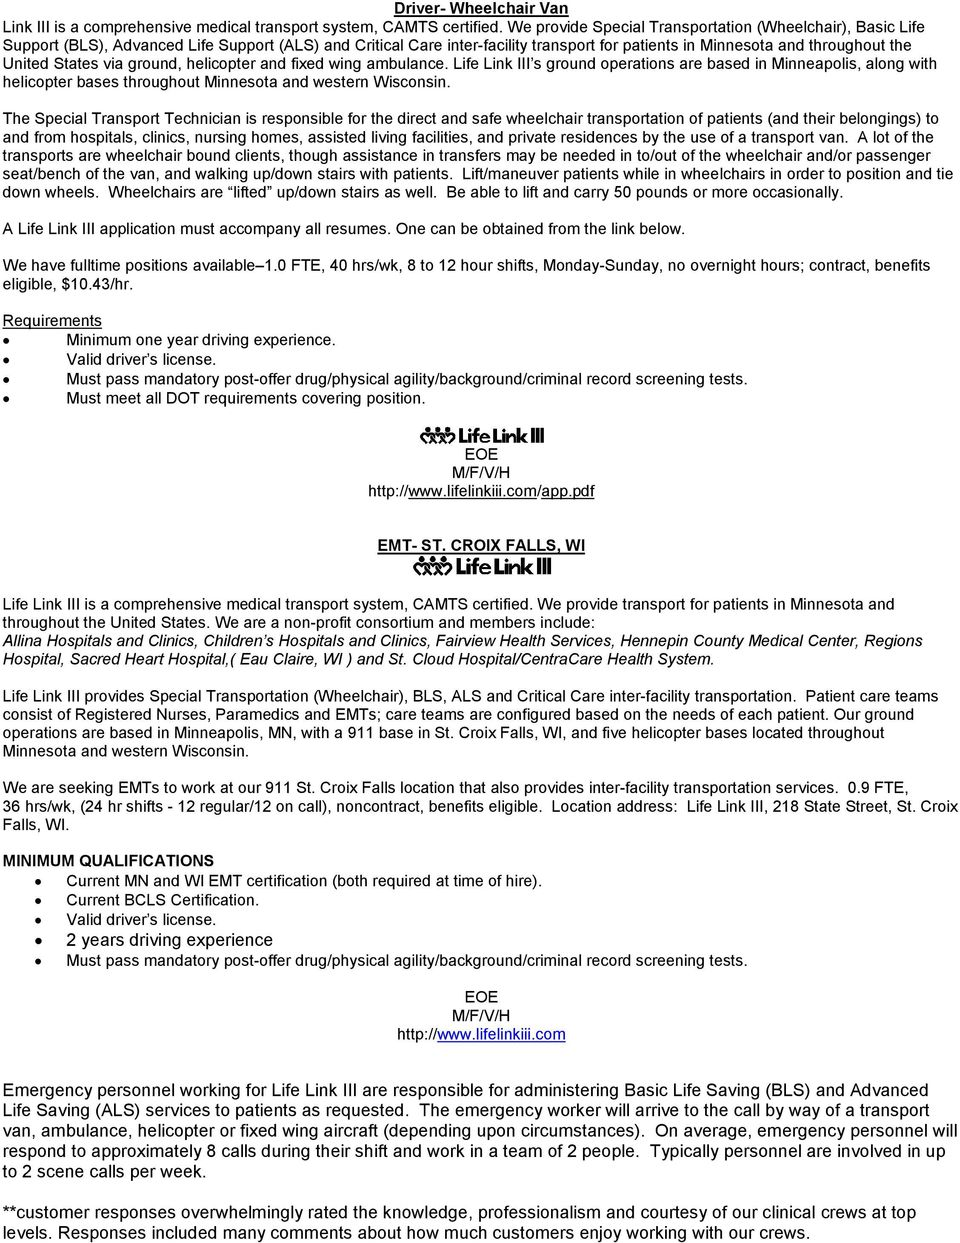 Rn Helicopter We Have Fulltime Part Time And Casual Positions